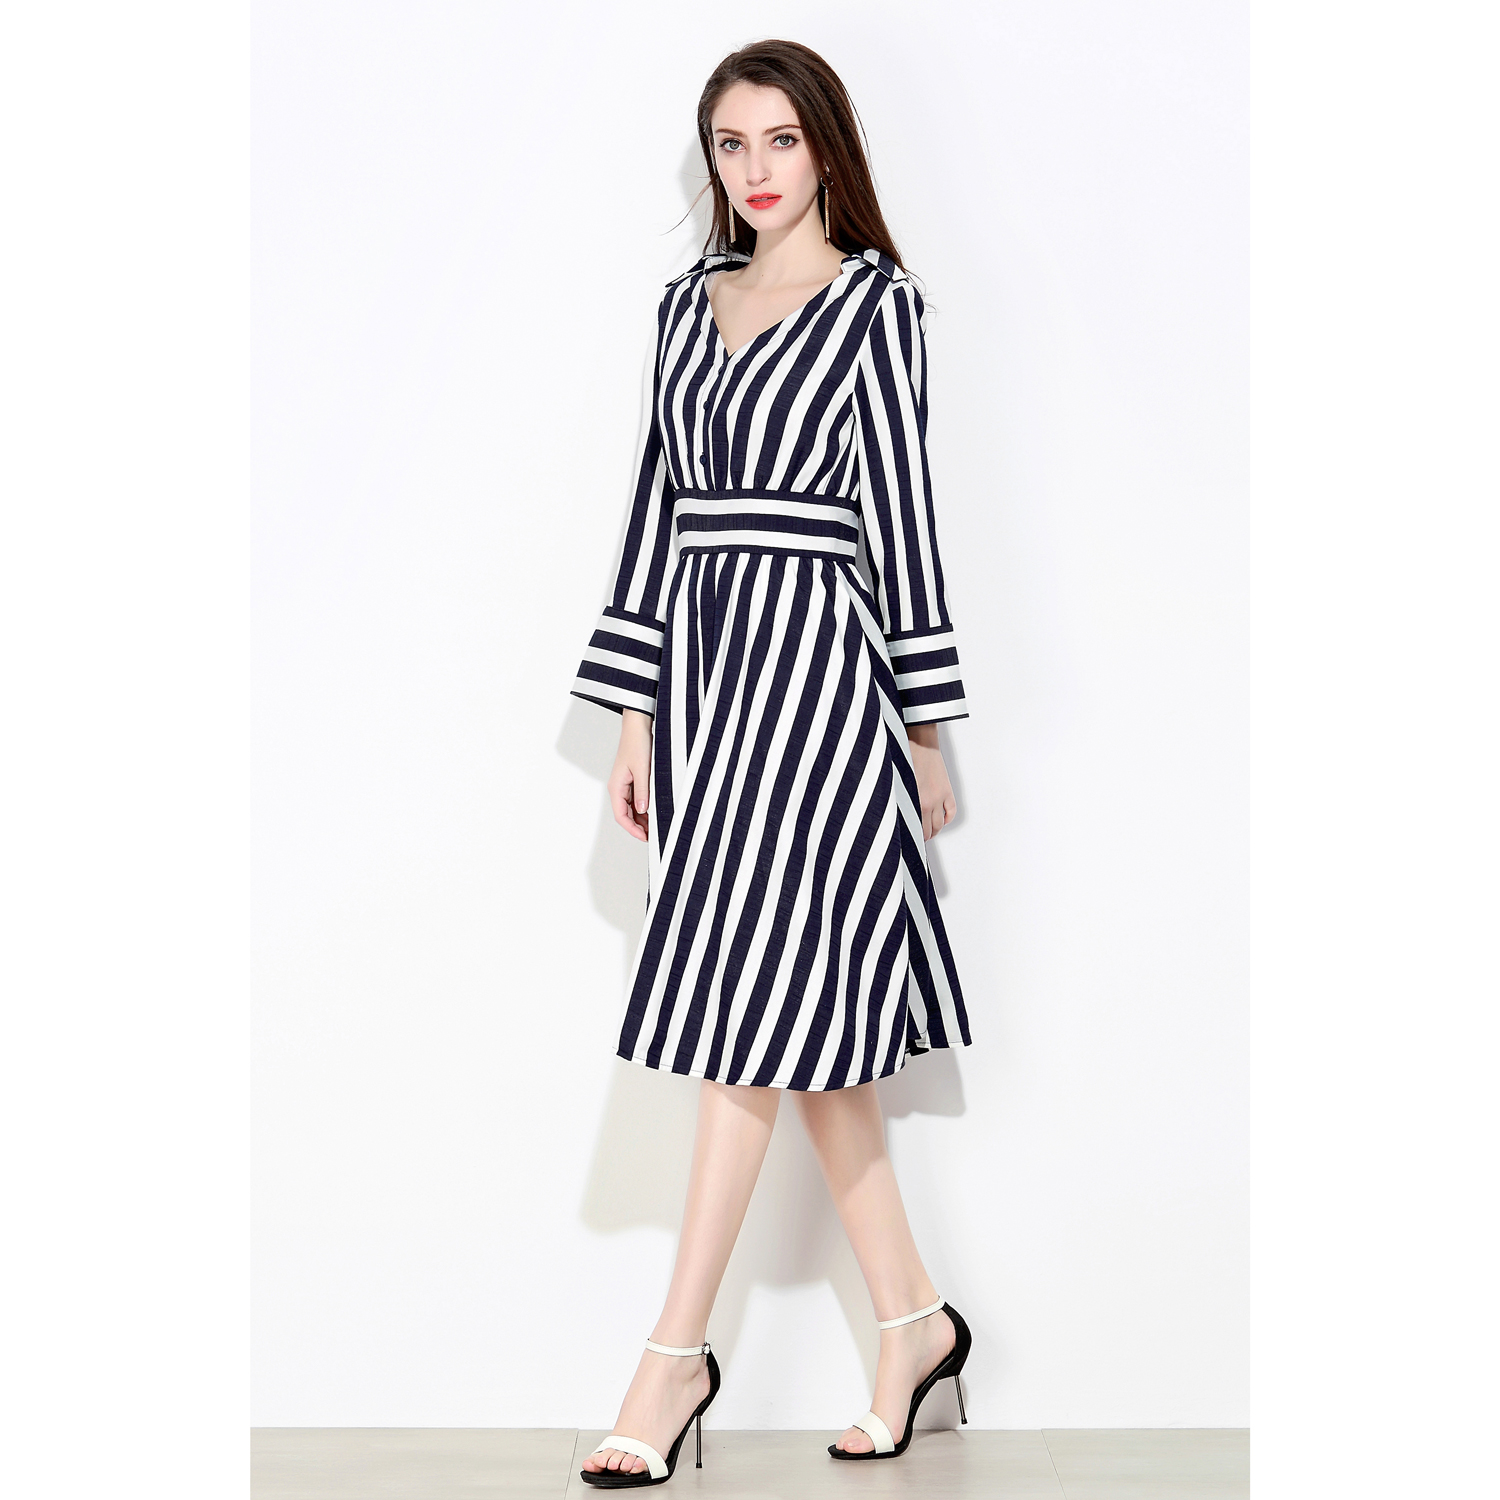 da90996a9e1 Marina Kaneva New Spring Summer Women Dress Lady Long Sleeve Stripe Bodycon  Casual Vintage Party Dresses V Neck Plus Size Vest-in Dresses from Women s  ...